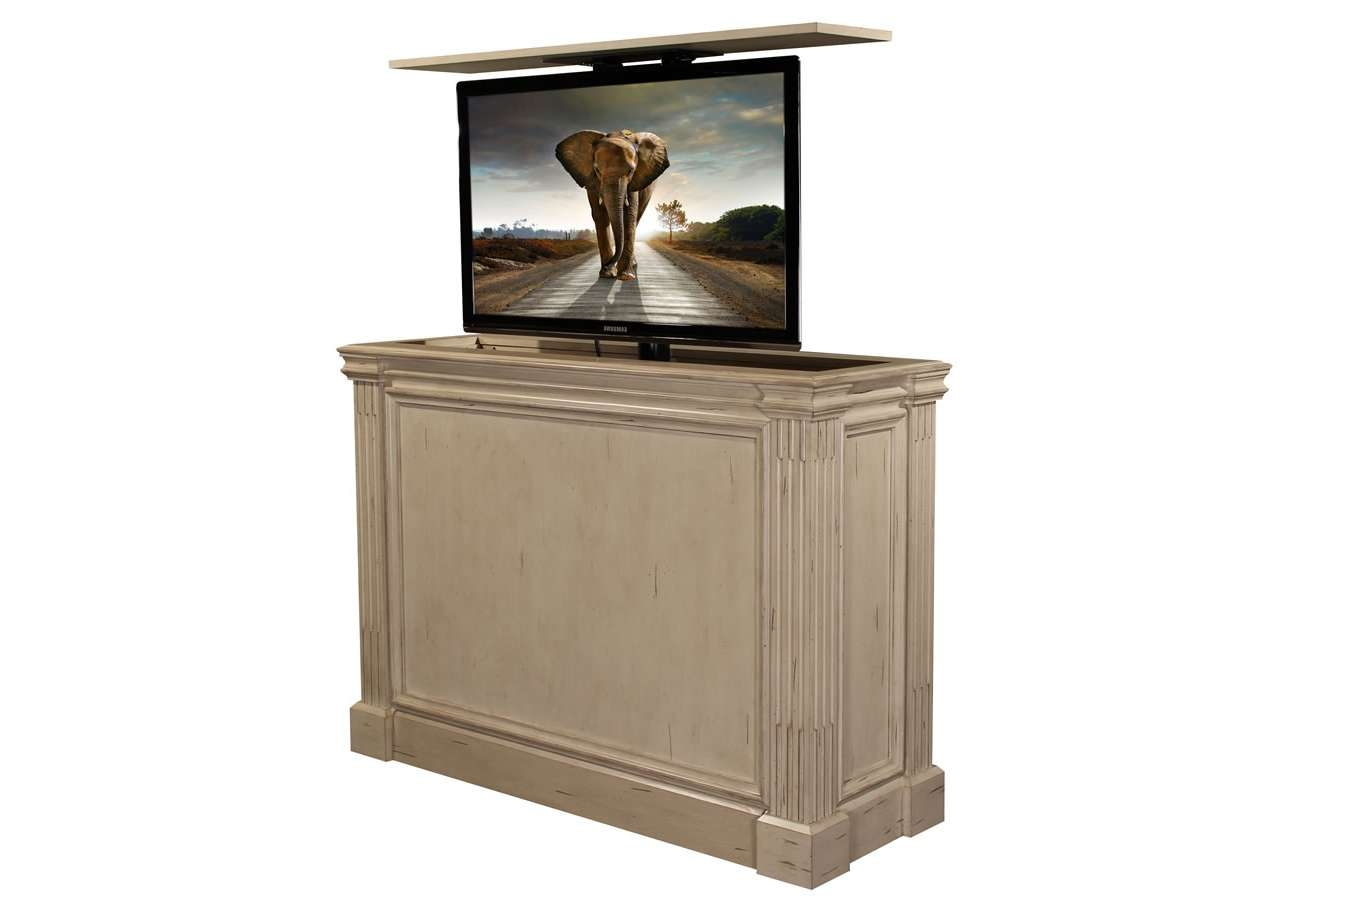 Hidden Tv Cabinet | Pop Up Tv Cabinet | Transitional Tv Cabinets Pertaining To Shabby Chic Tv Cabinets (View 18 of 20)